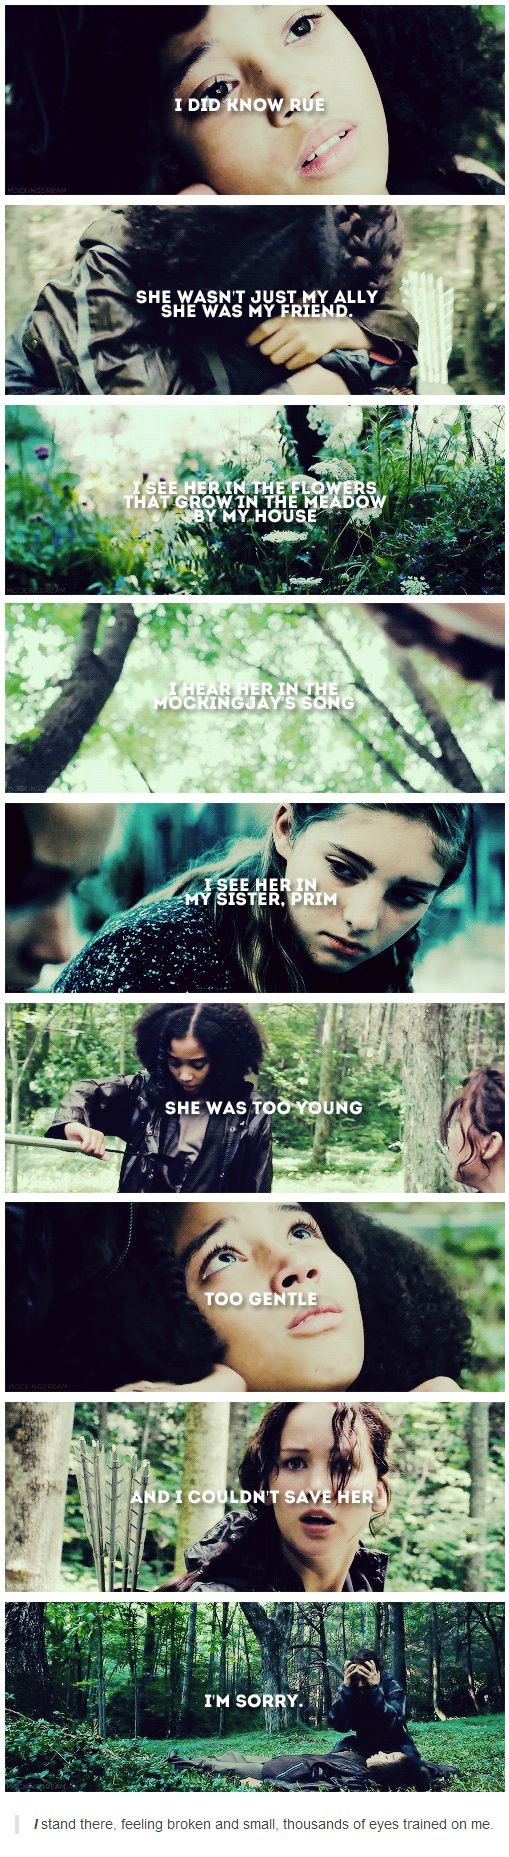 """I did know Rue. She wasn't just my ally, she was my friend. I see her in the flowers that grow in the meadow by my house. I hear her in the Mockingjay's song. I see her in my sister, Prim. She was too young, too gentle. And I couldn't save her. I'm sorry."" I stand there, feeling broken and small, thousands of eyes trained on me."